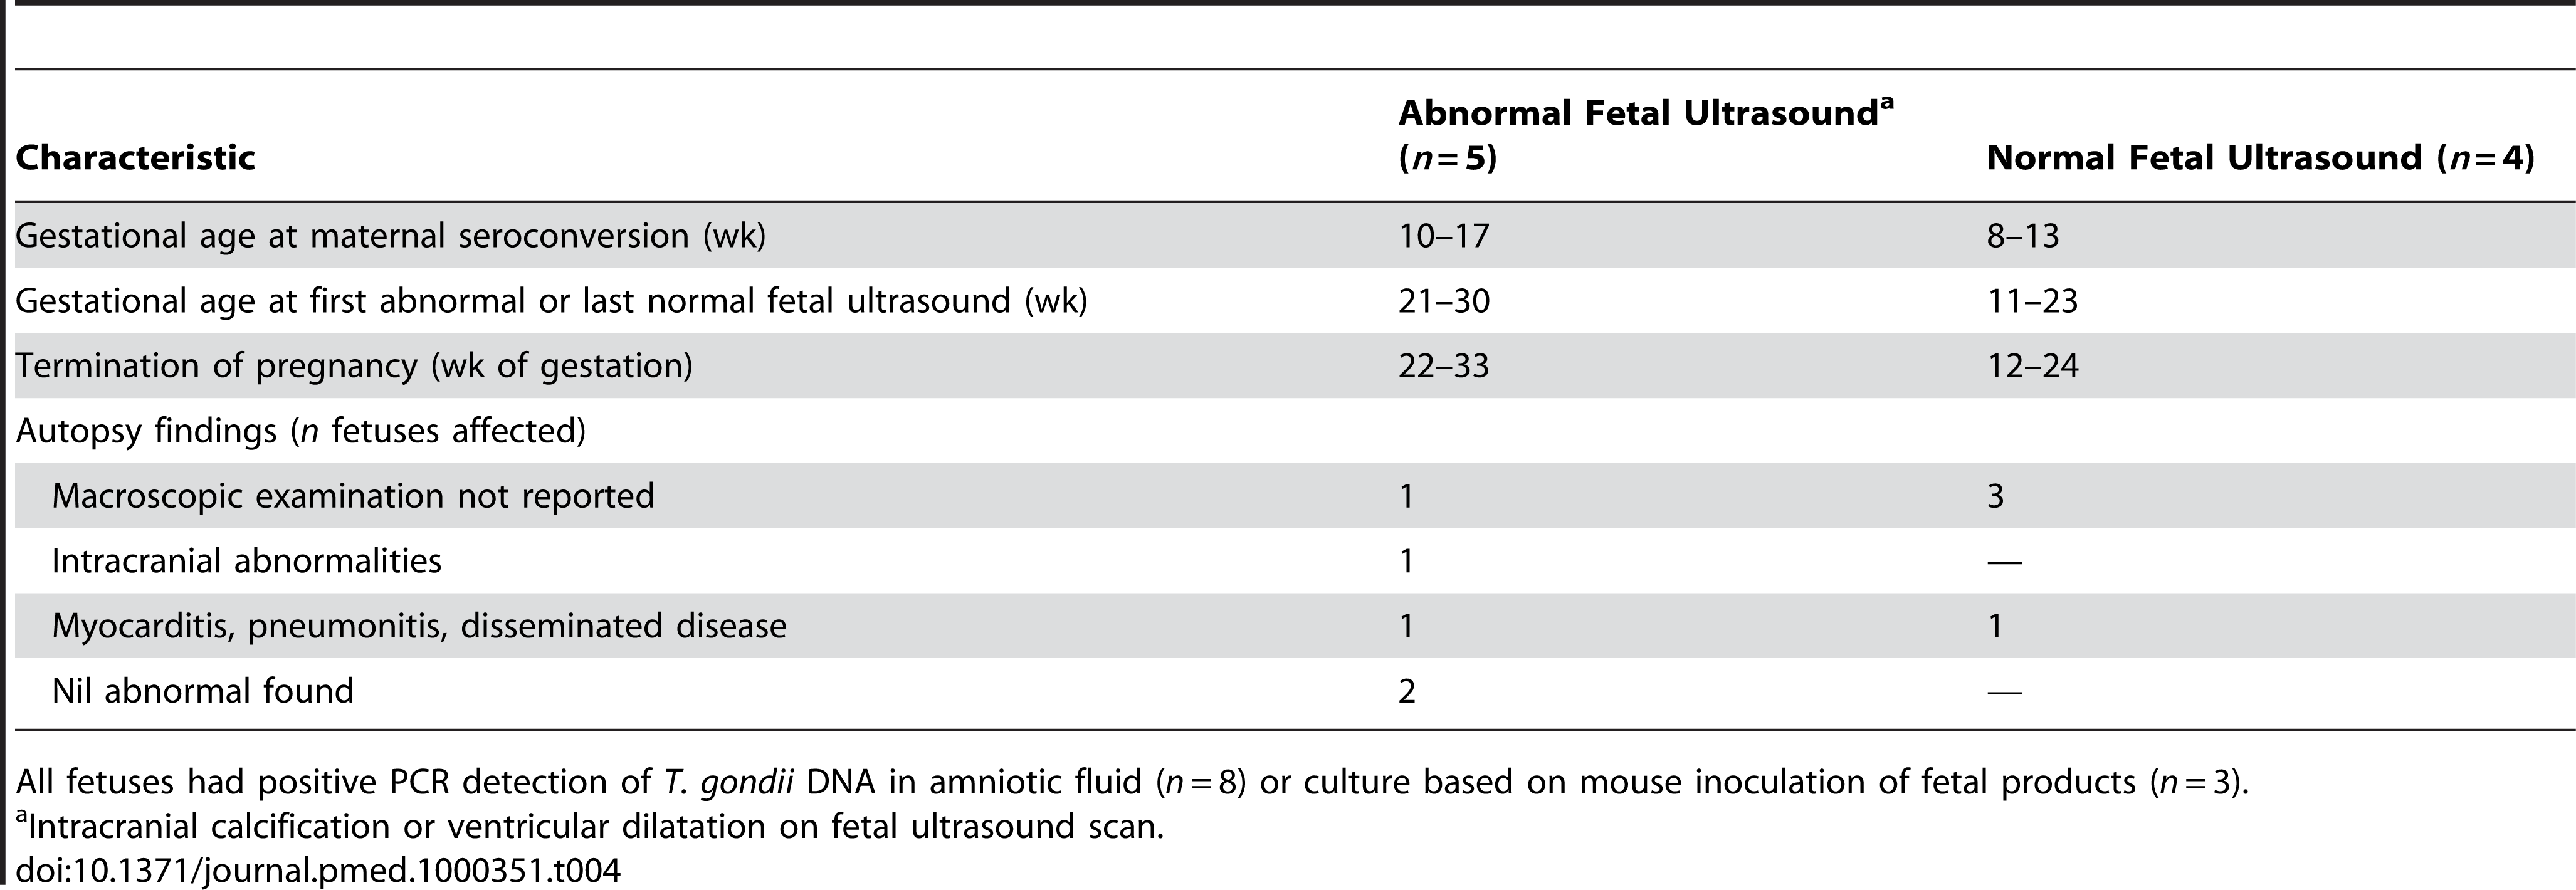 Characteristics of fetuses terminated with congenital toxoplasmosis.